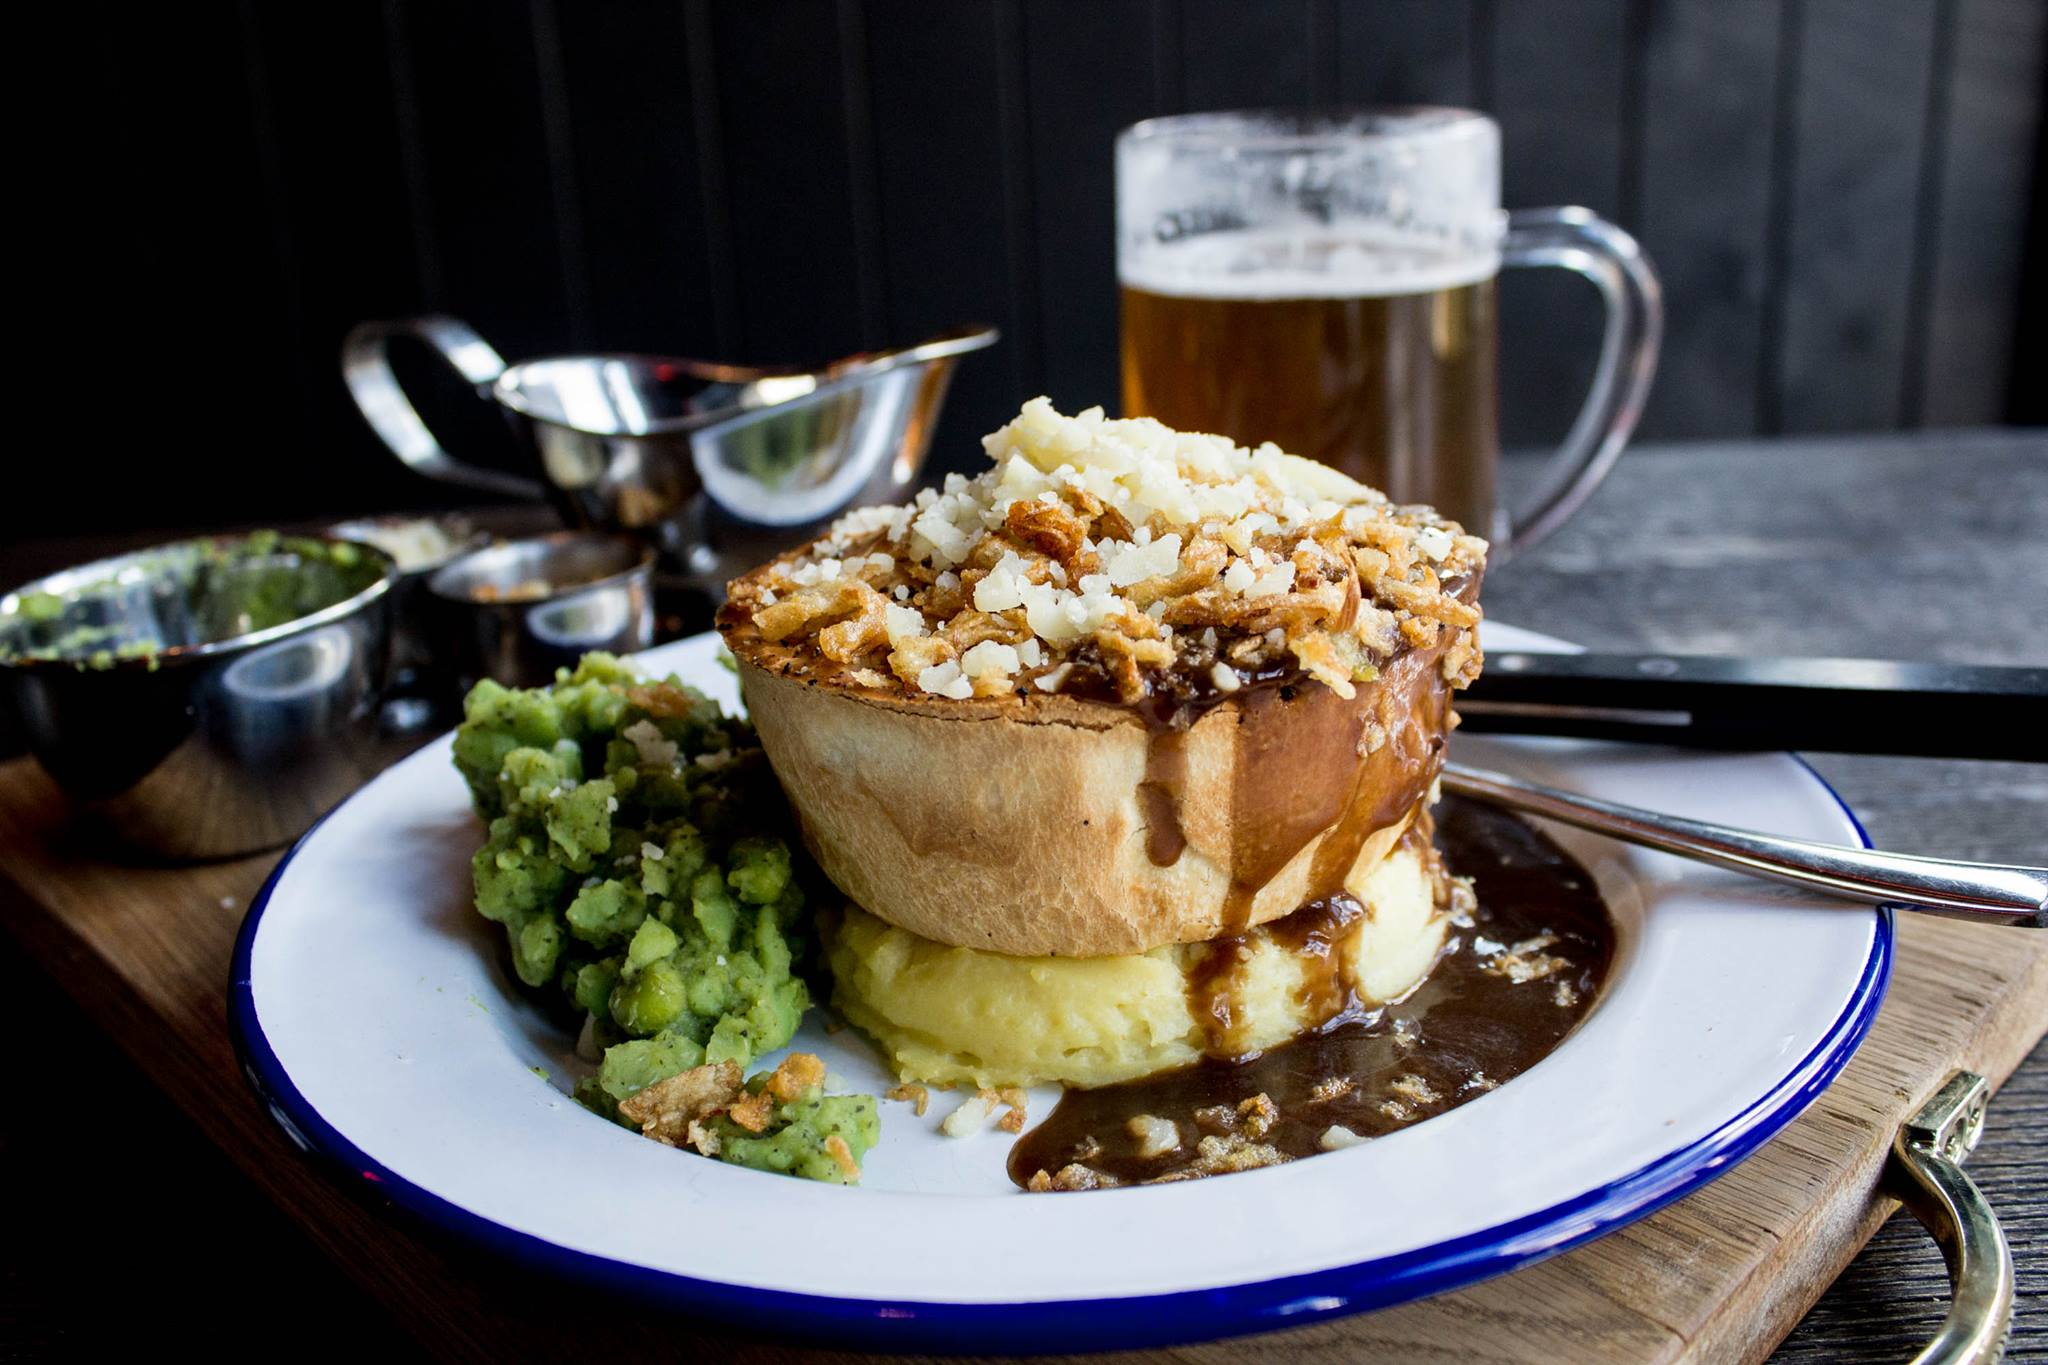 The Waiting Rooms pie and mash dish